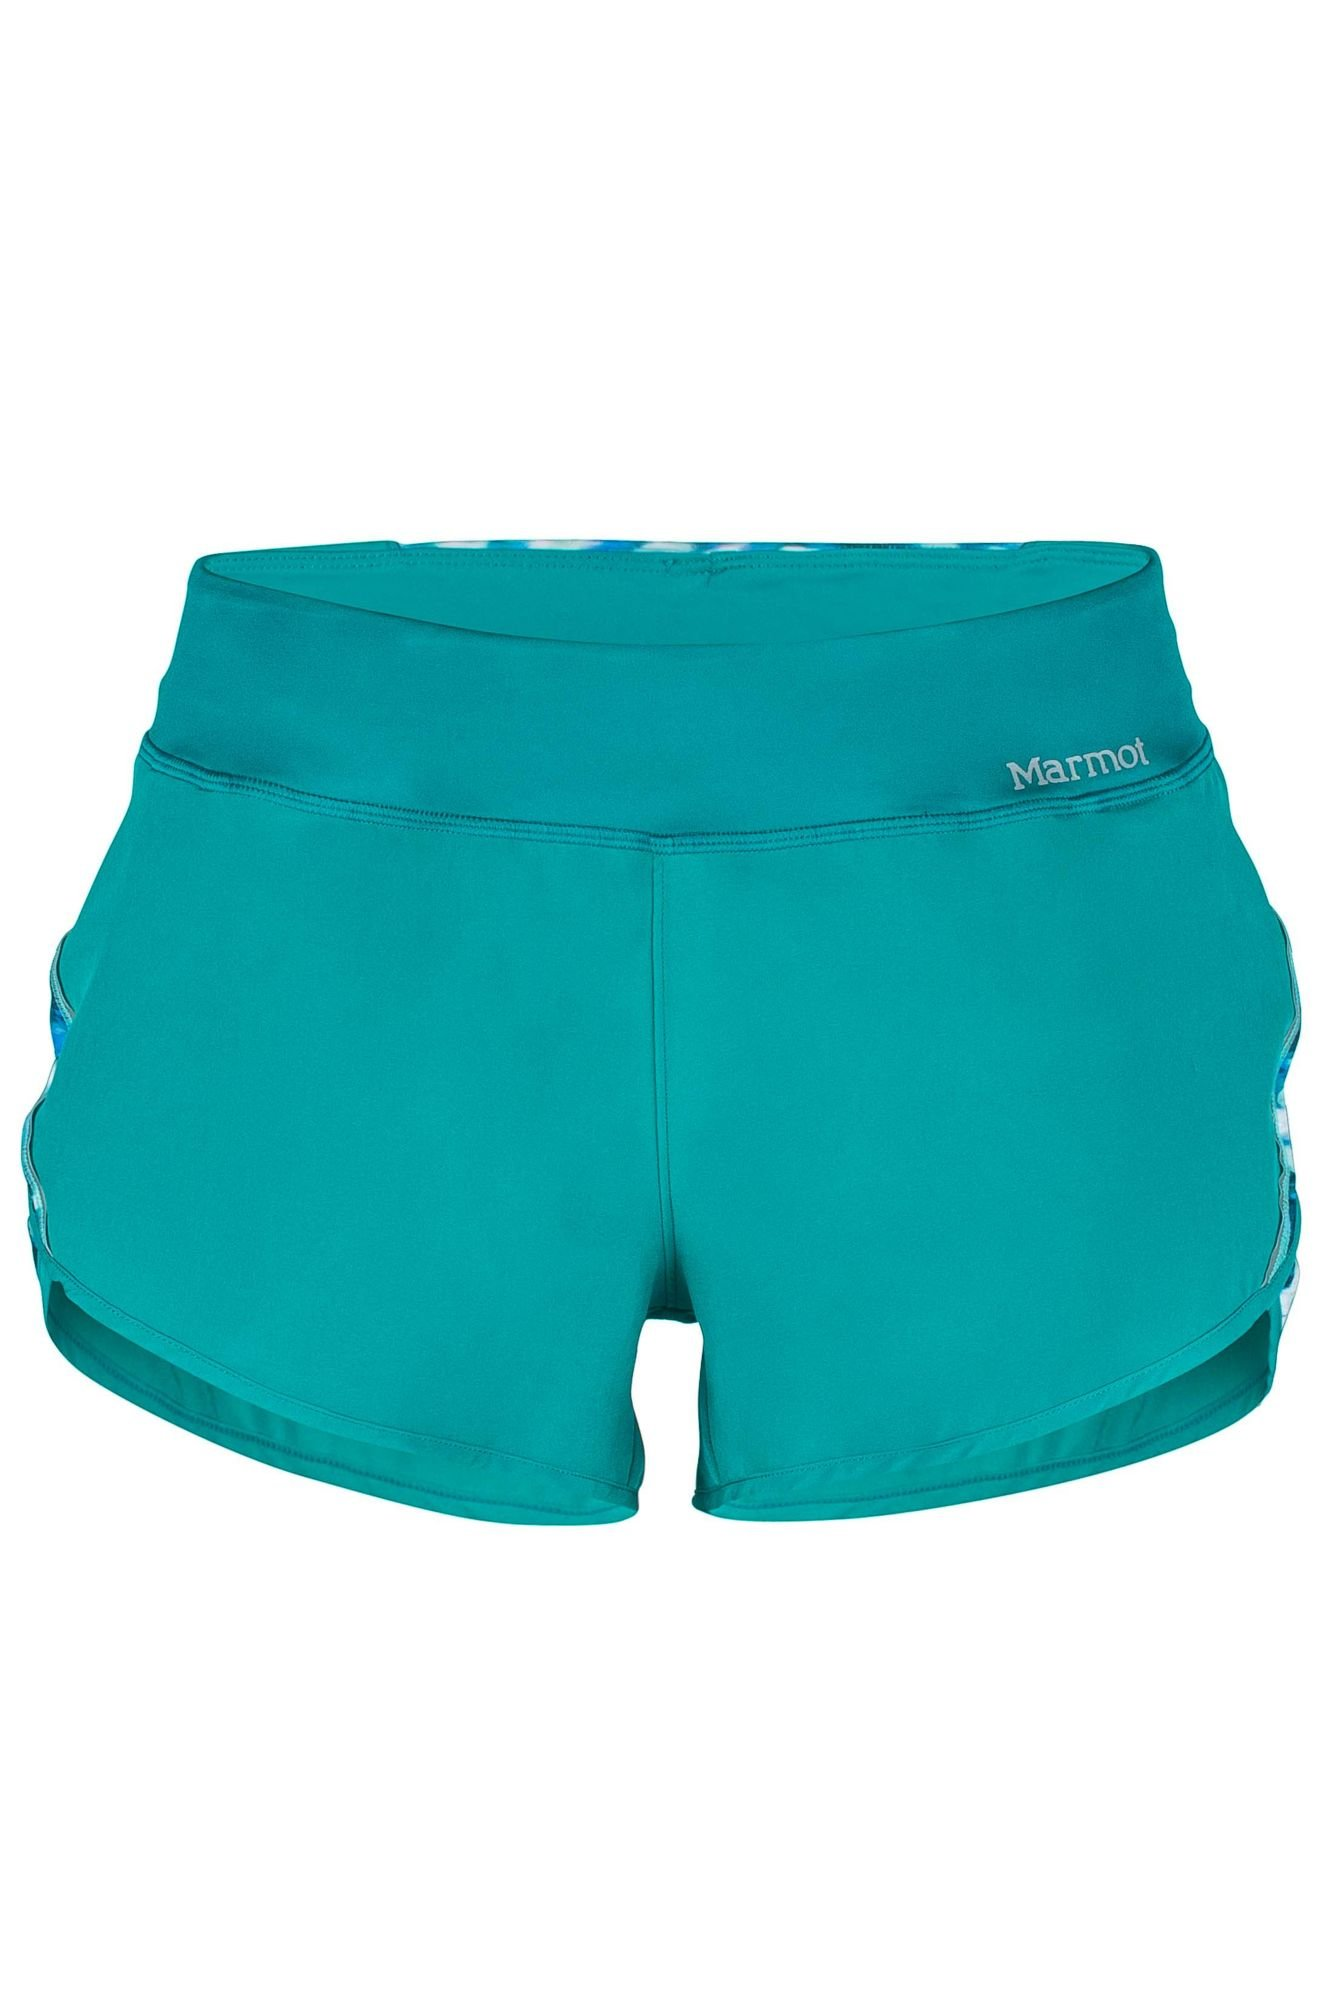 Шорты женские Marmot - Wm's Reflects Short Malachite, M (MRT 49600.3679-M)